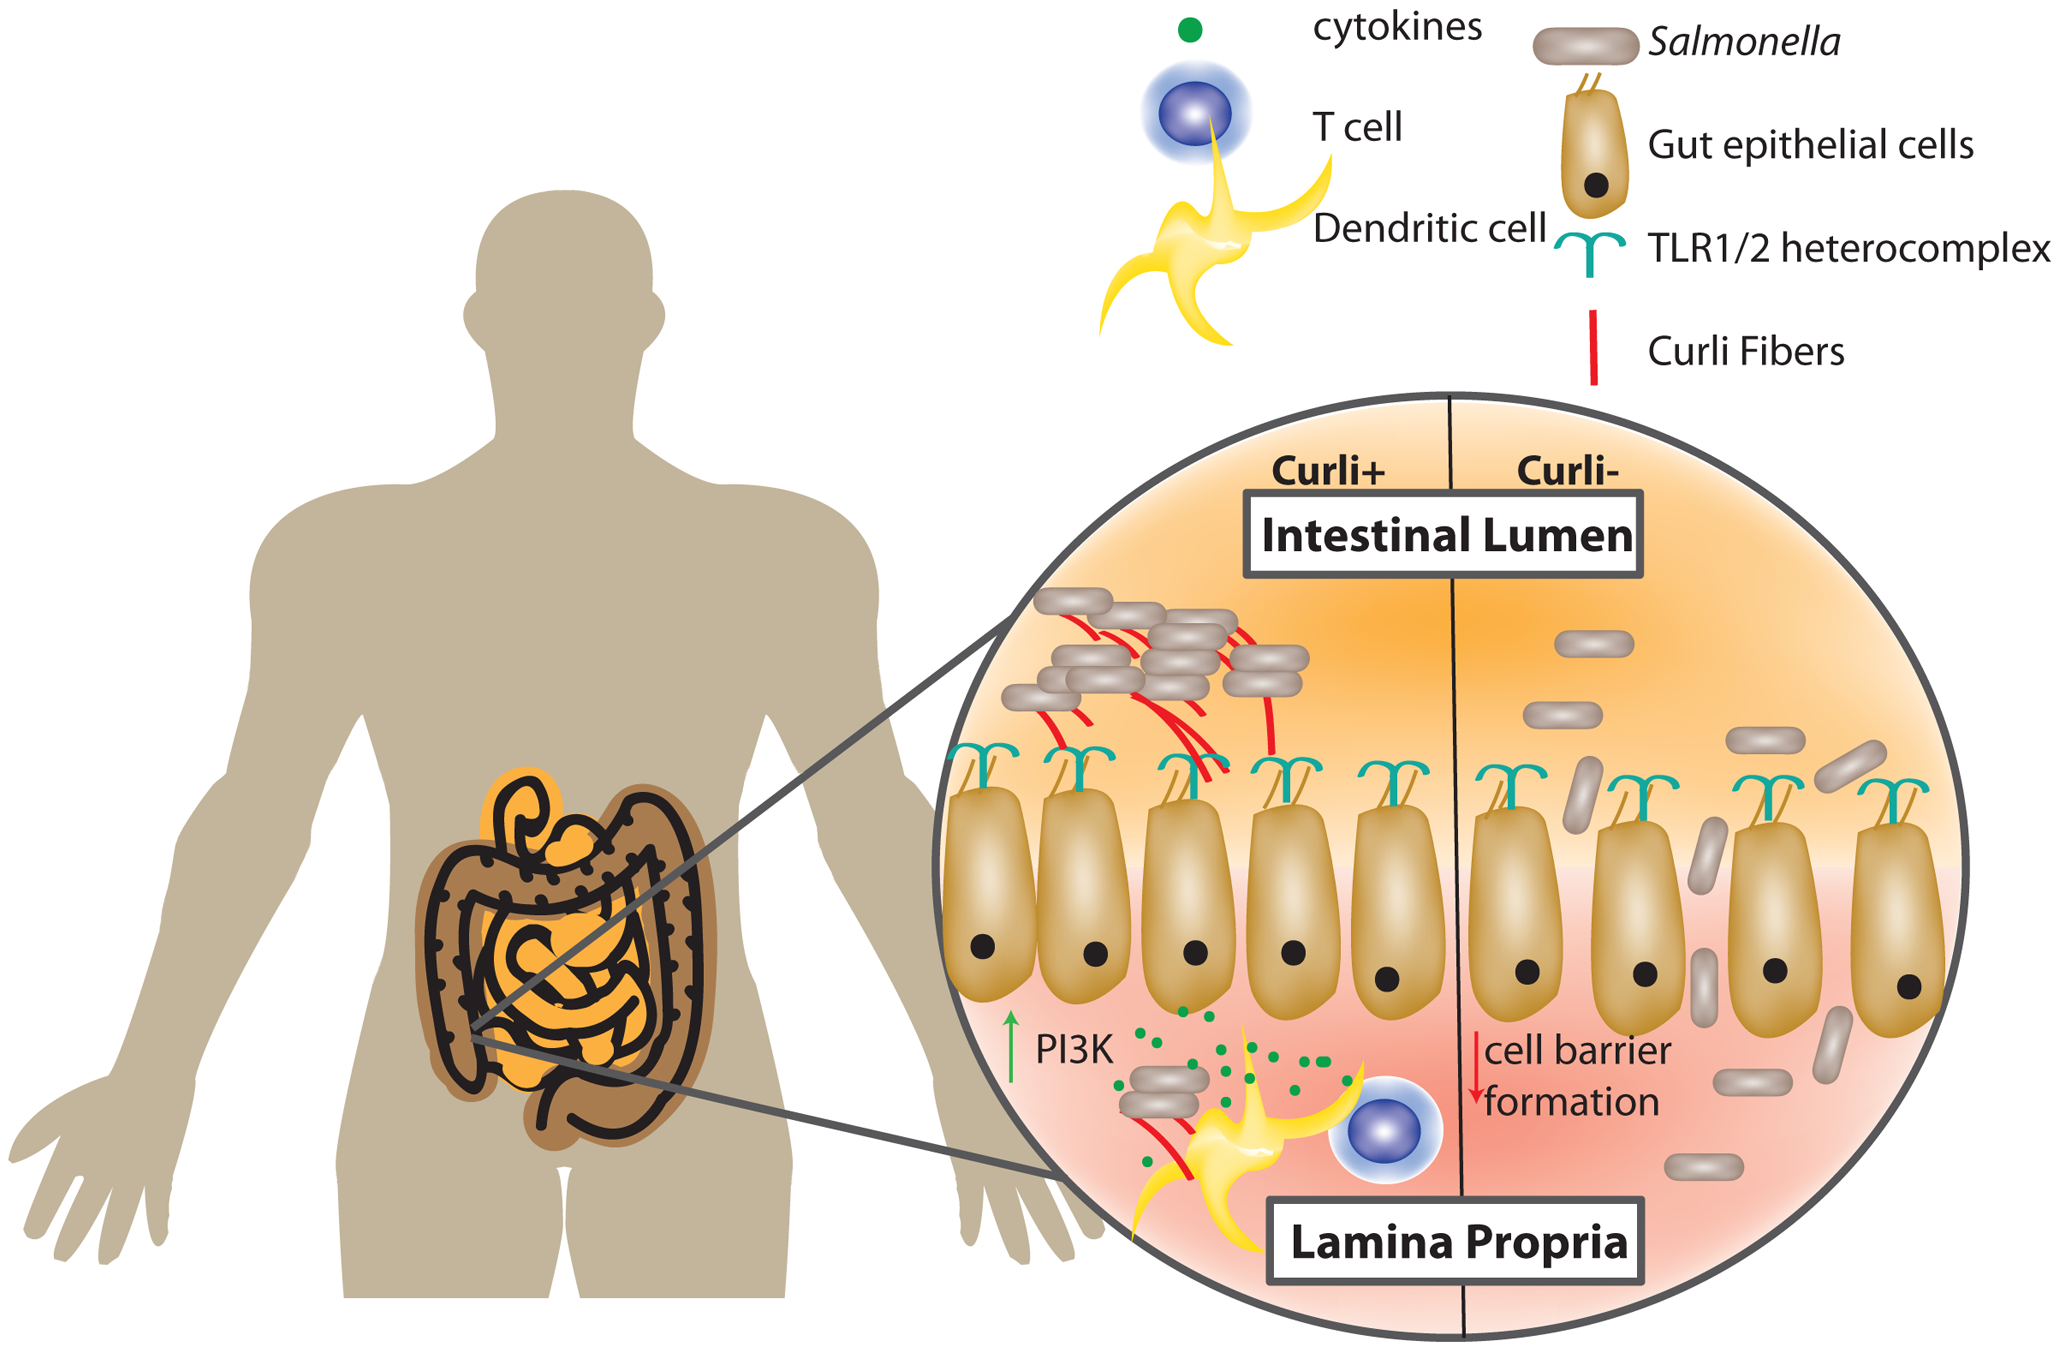 Gut epithelial cells and the host immune system recognize curli fibers.